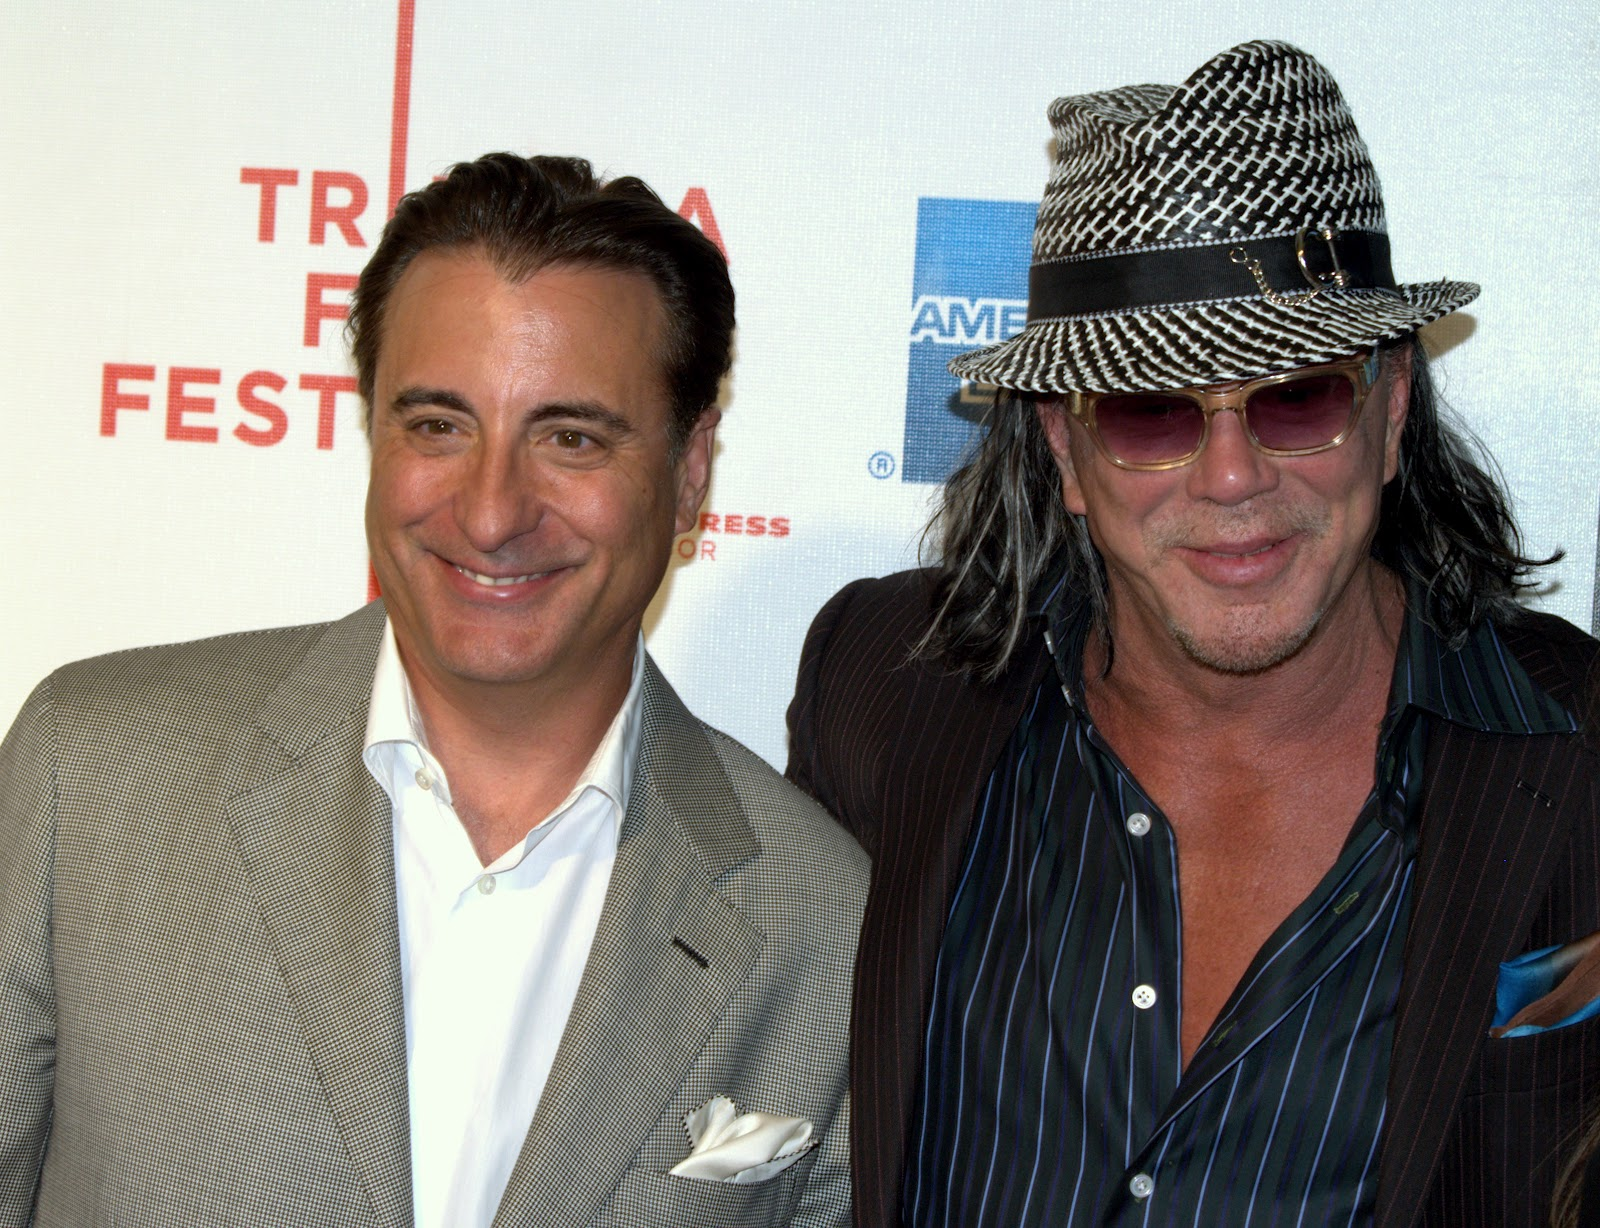 http://3.bp.blogspot.com/-aJLC1hvwC1g/TzQokVM-swI/AAAAAAAAD_w/oZ47nbWwFoU/s1600/Andy_Garcia_and_Micky_Rourke_at_the_2009_Tribeca_Film_Festival.jpg